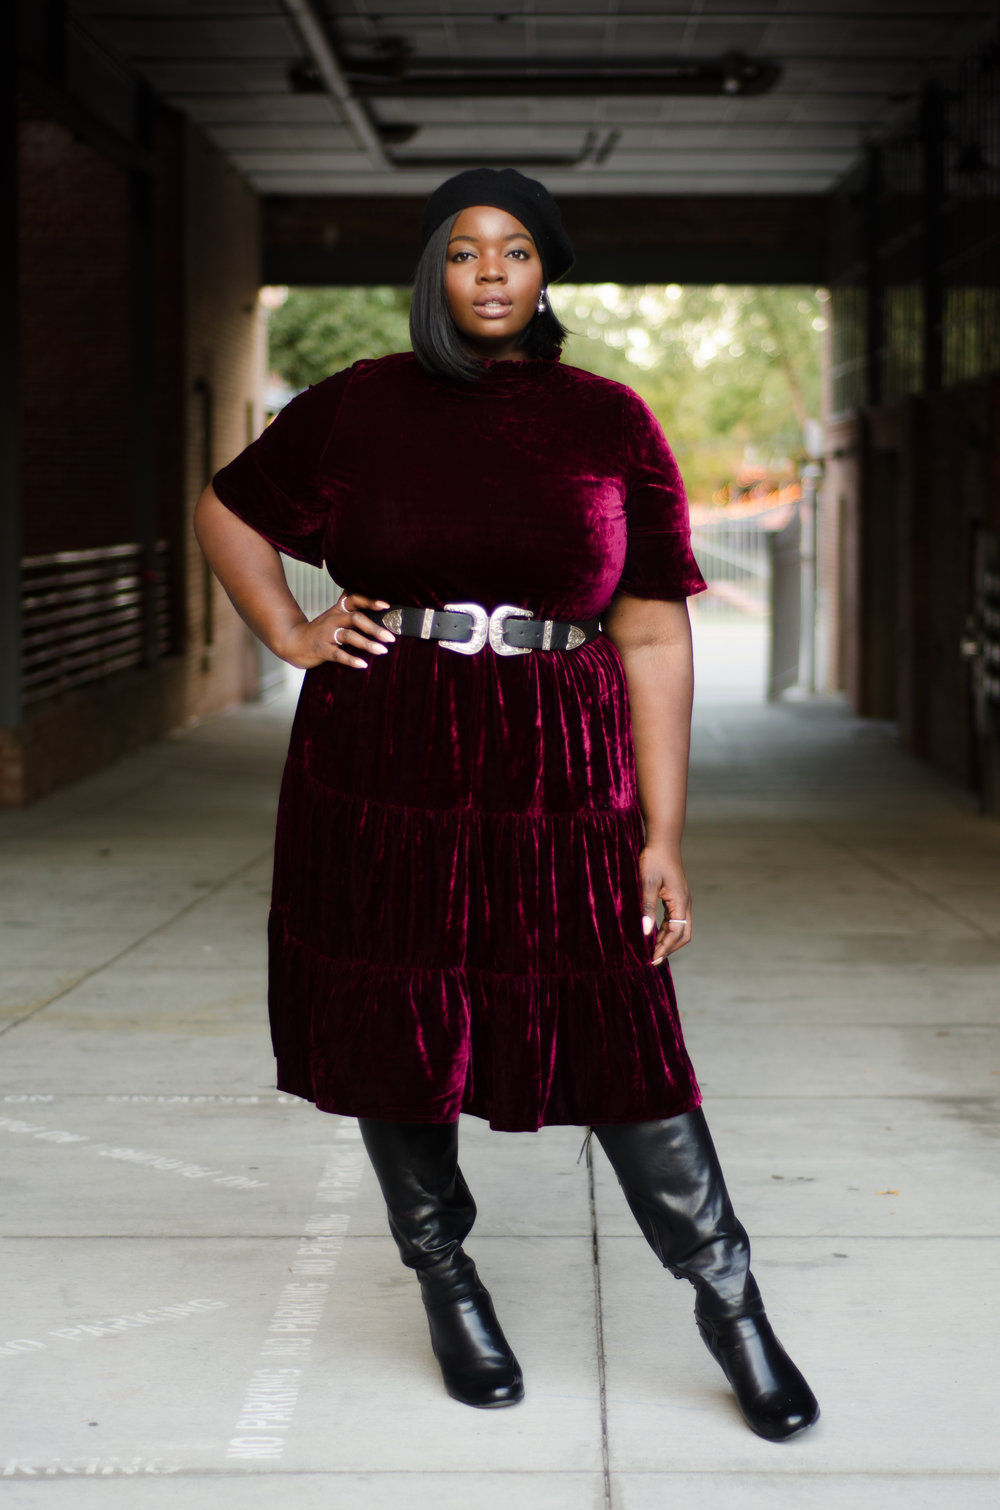 plus-size-fall-outfits-simply-be-valerie-eguavoen-206.jpg